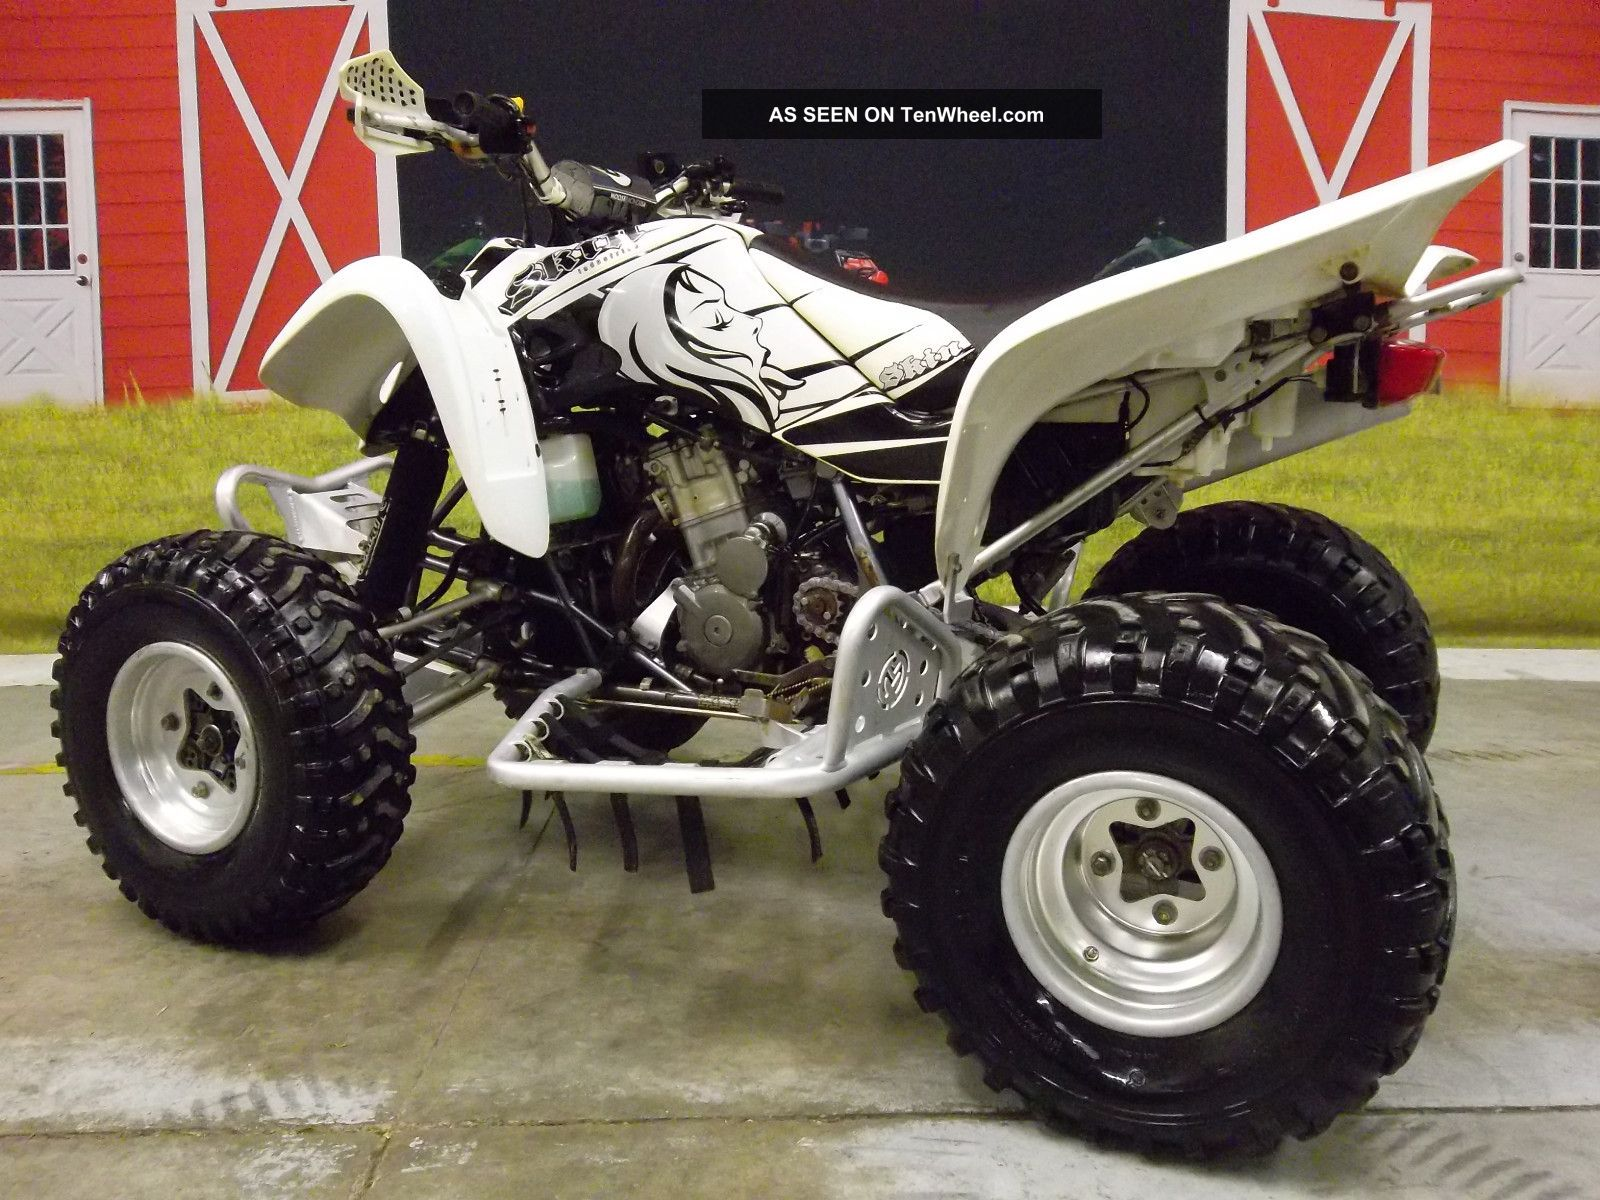 Yamaha Yfz 450 Engine Diagram All About Wiring Diagrams